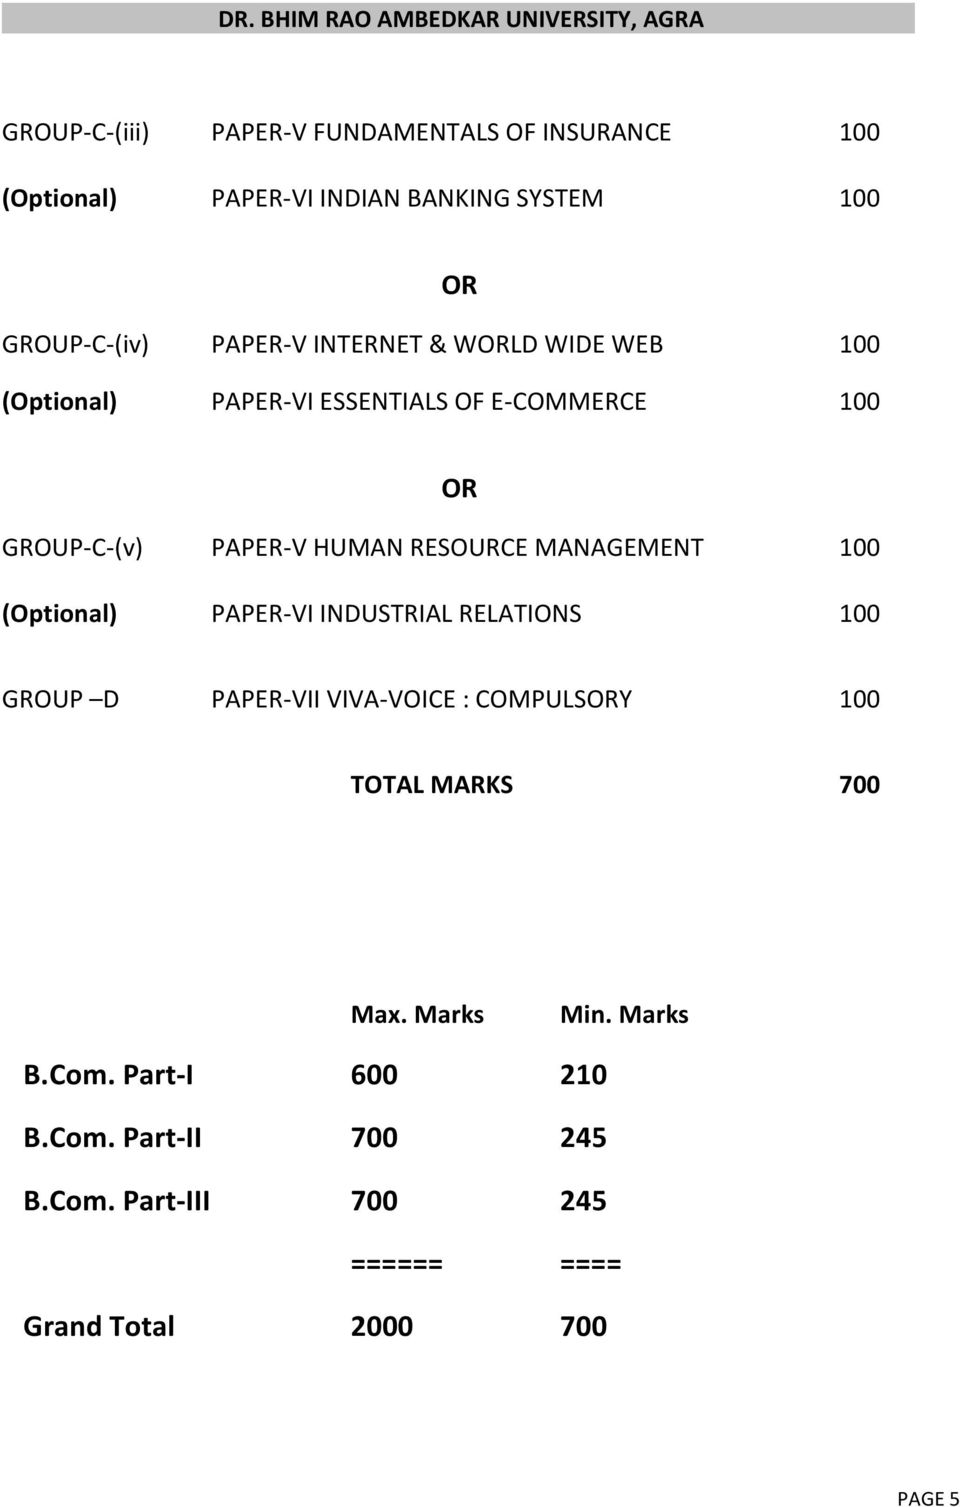 MANAGEMENT 100 (Optional) PAPER-VI INDUSTRIAL RELATIONS 100 OR GROUP D PAPER-VII VIVA-VOICE : COMPULSORY 100 TOTAL MARKS